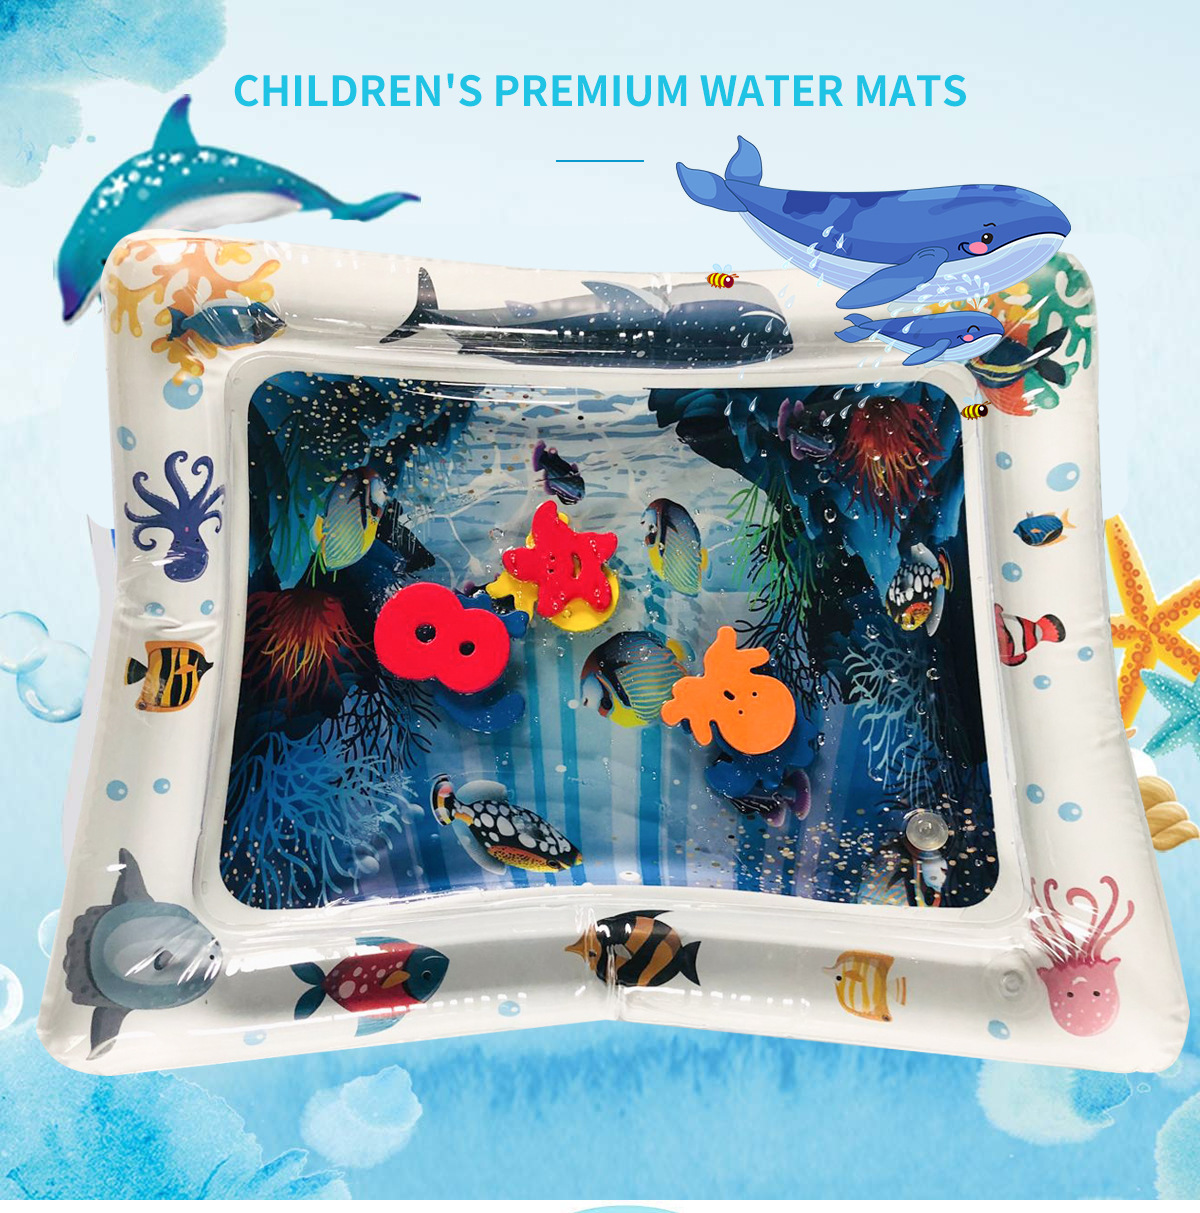 HTB1.A8dMHrpK1RjSZTEq6AWAVXaw Baby Inflatable Water Play Mat Infant Summer Beach Water Mat Toddler Fun Activity Play Toys for Sensory Stimulation Motor Skills